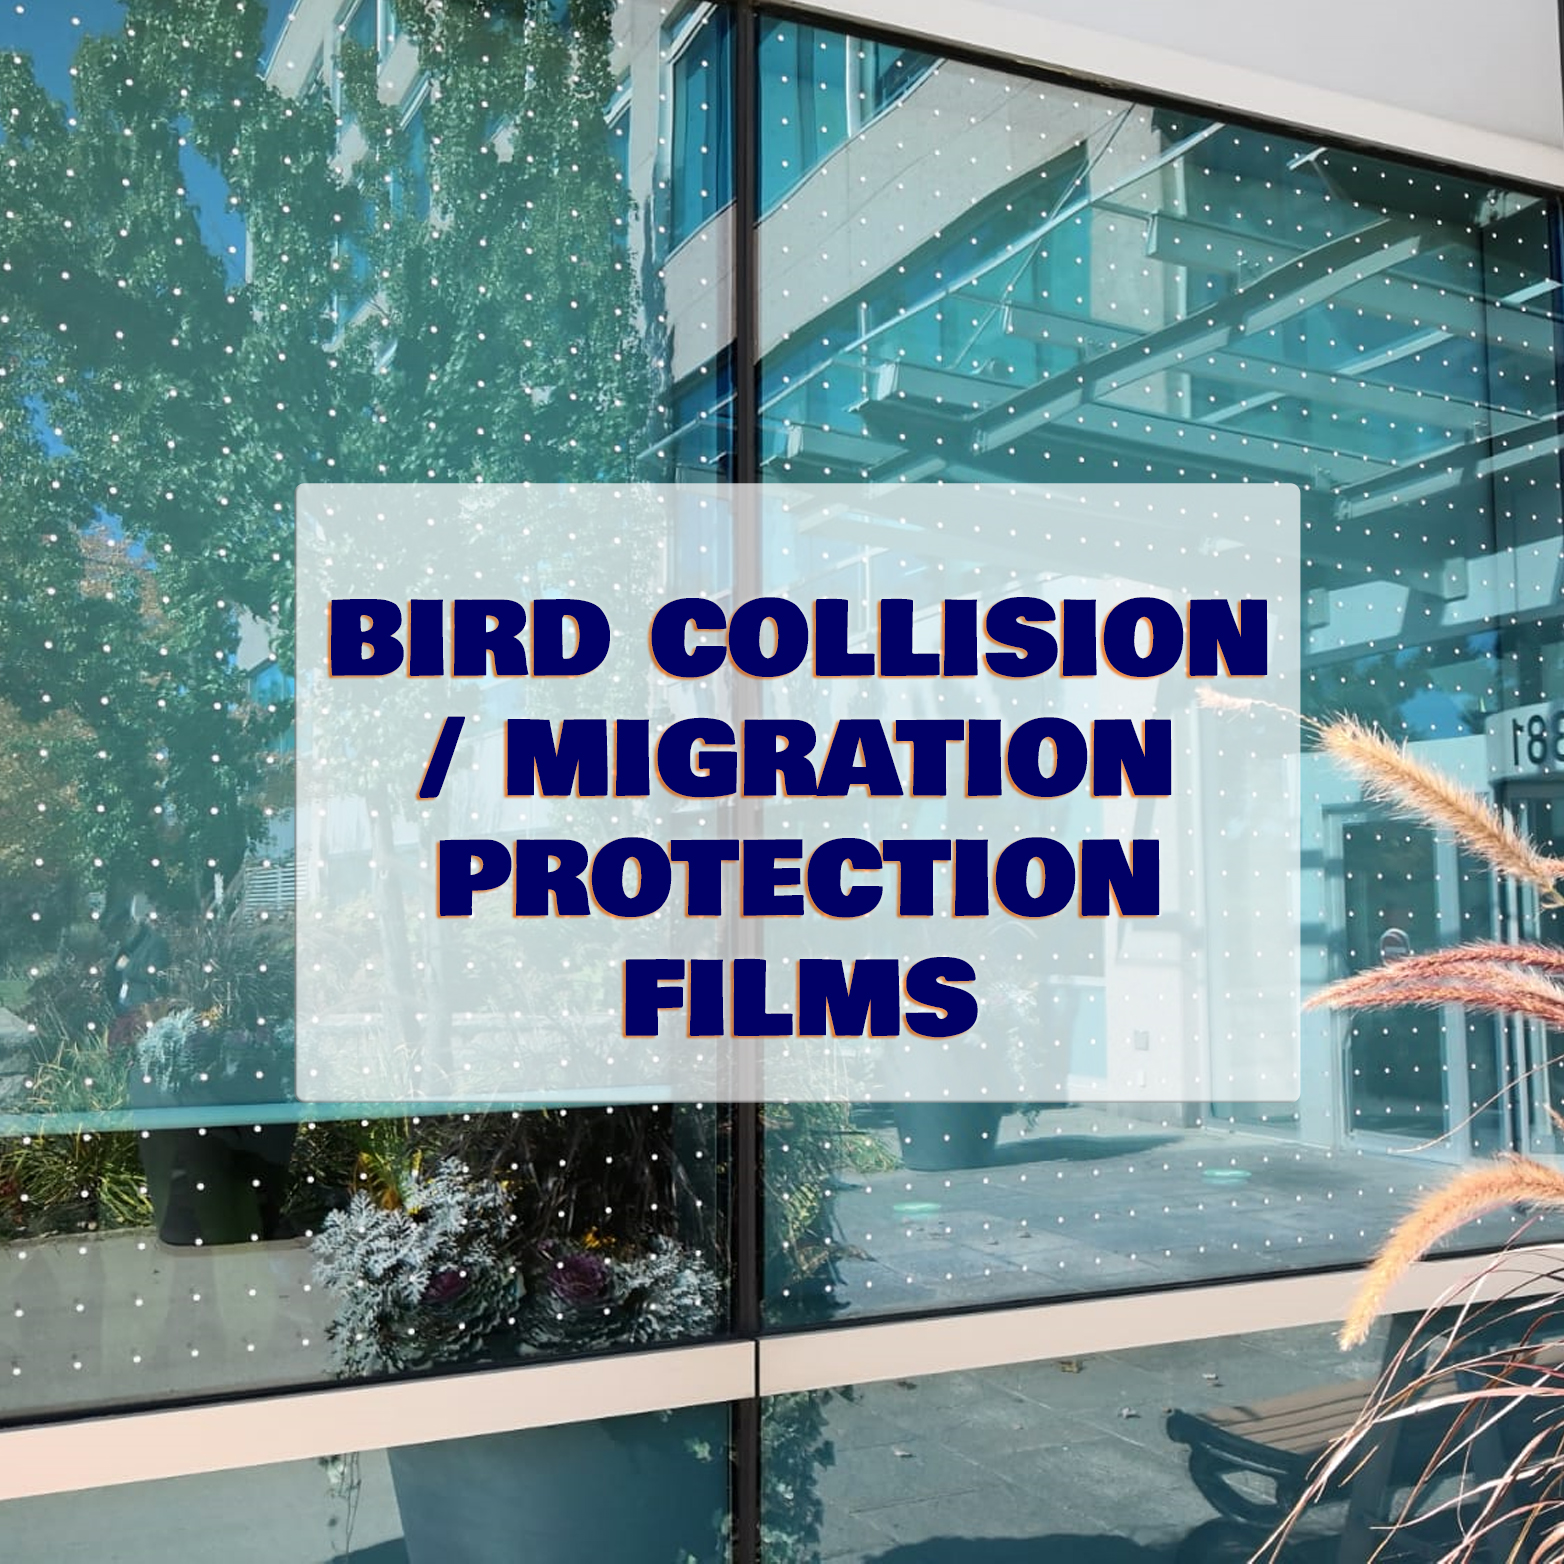 bird-migration-collision-protection-catgory